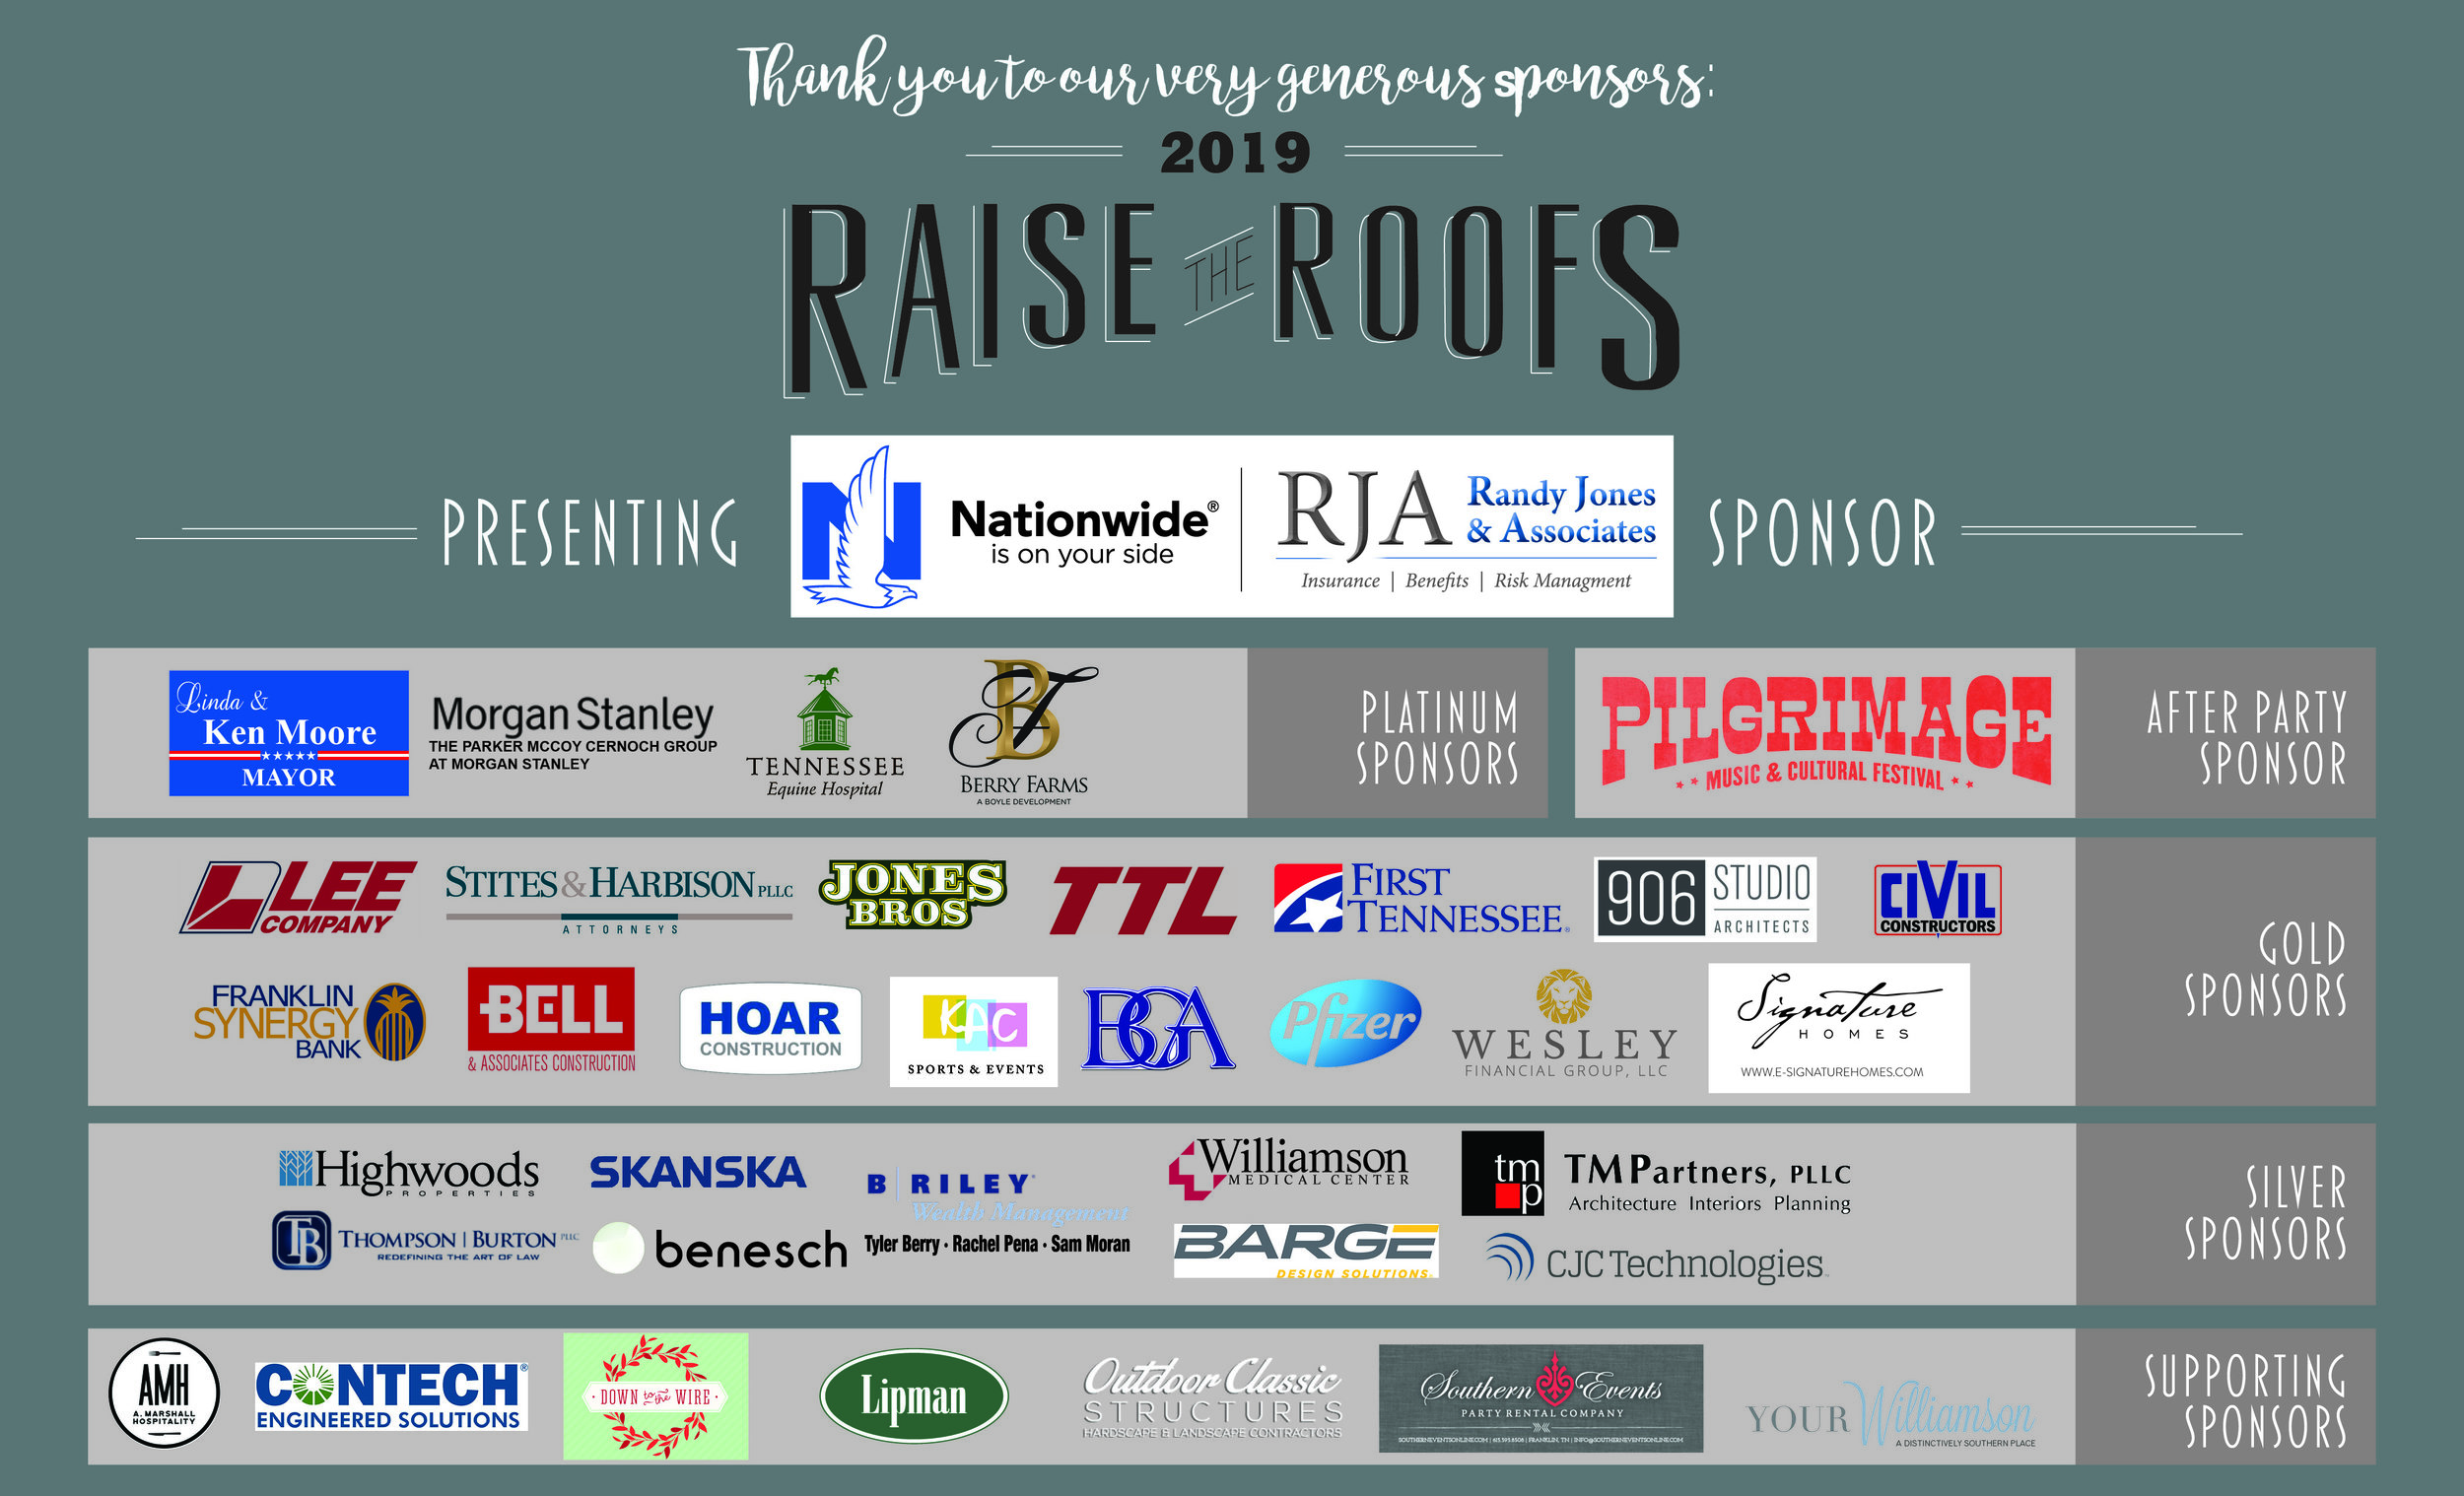 2019 Raise the Roofs Sponsors.jpg